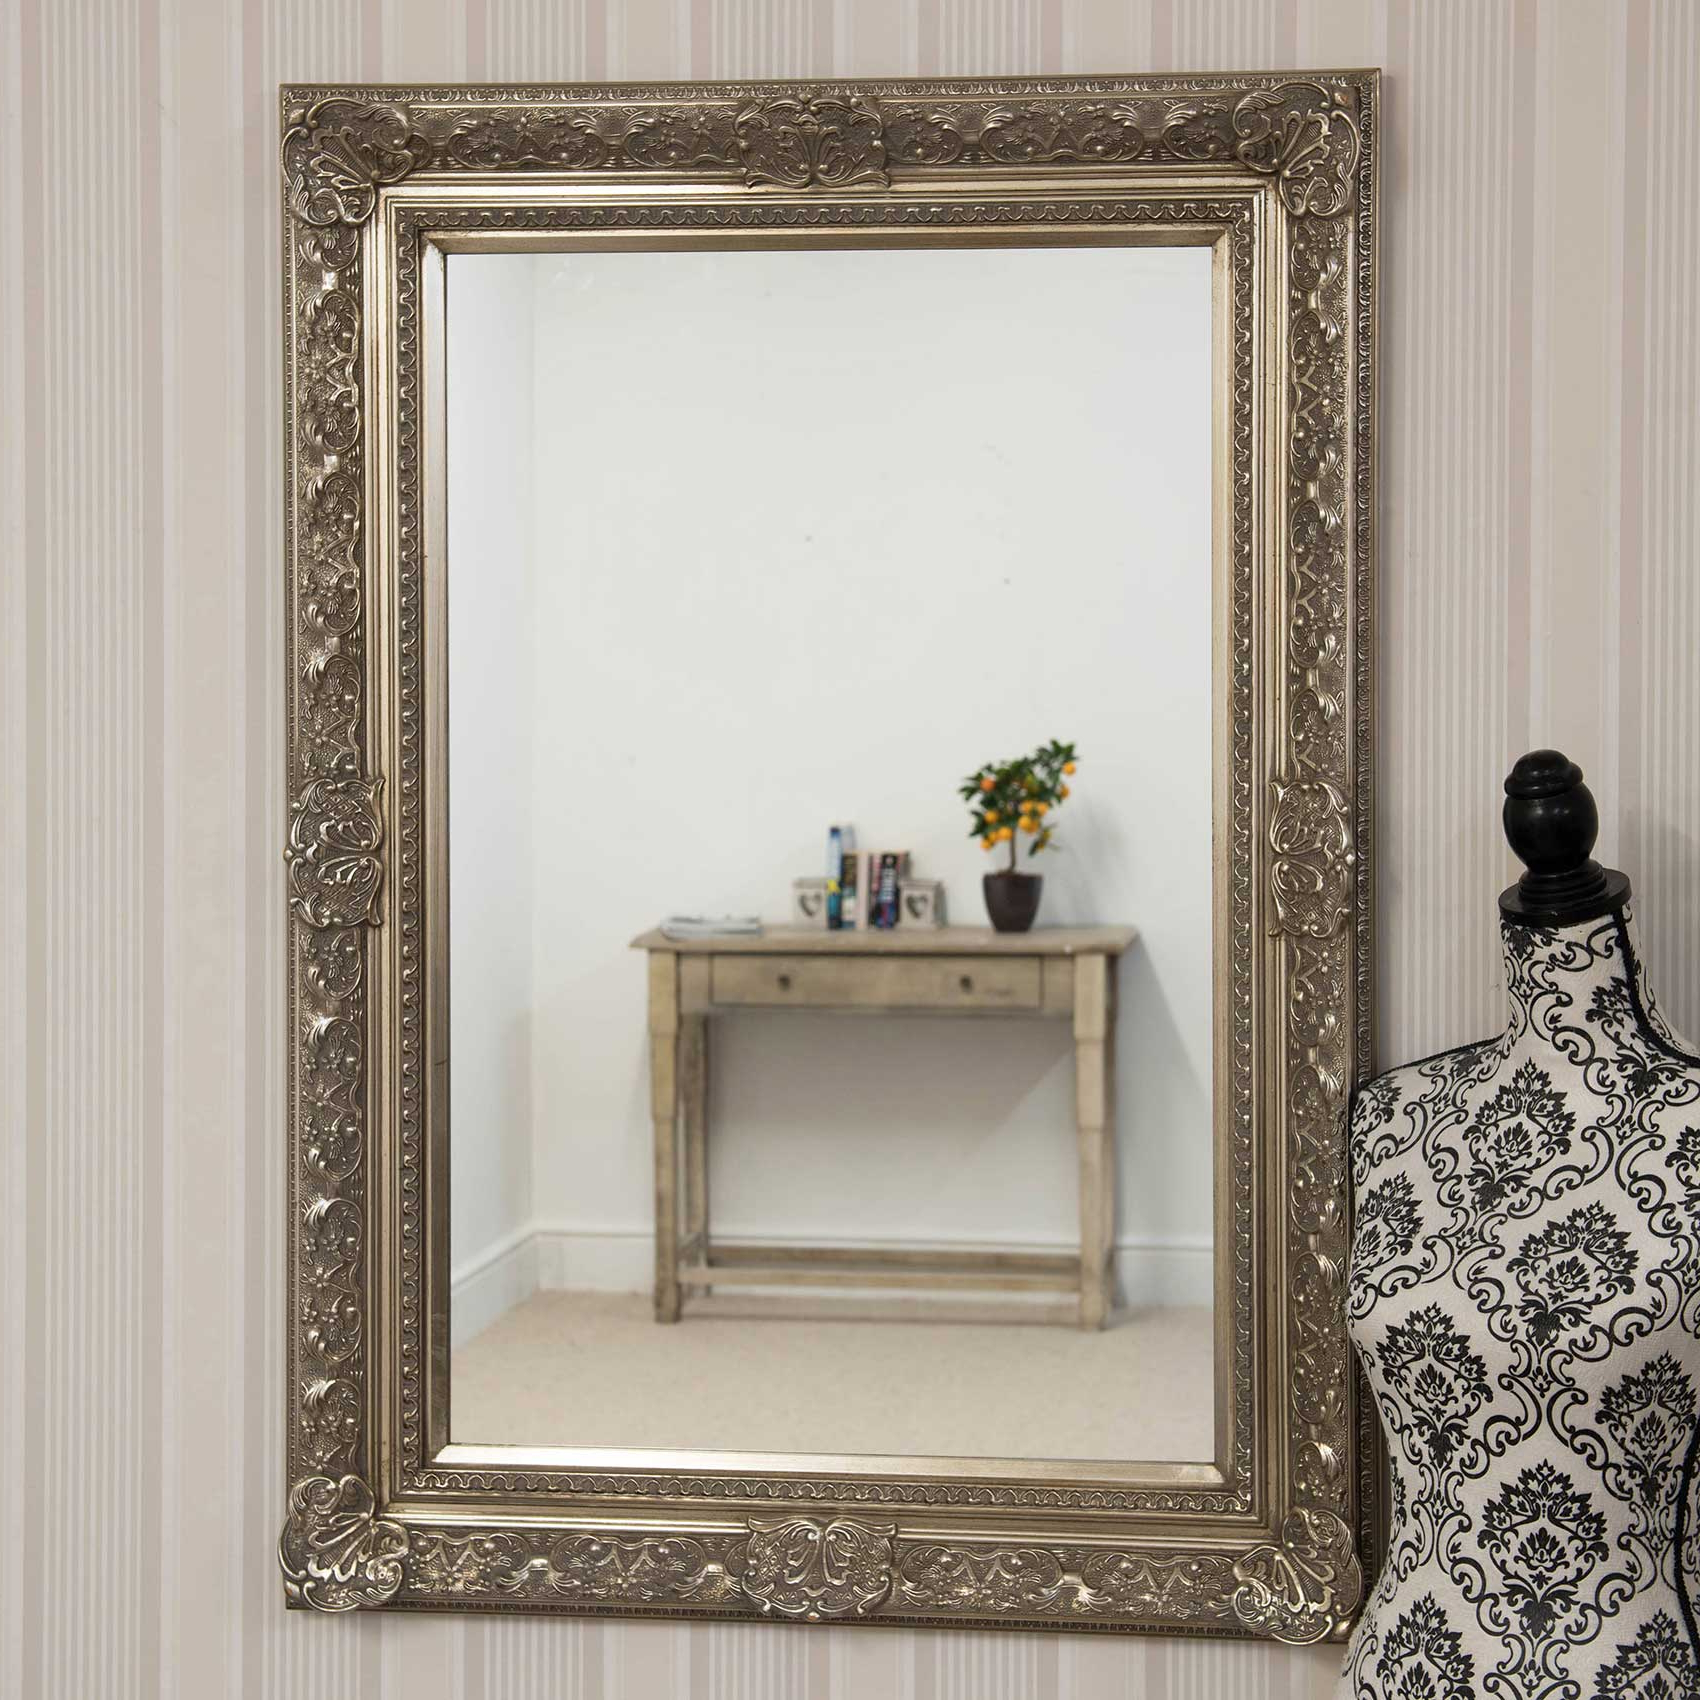 Widely Used Details About 3ft10 X 2ft10 117cm X 86cm Large Silver Antique Style Big  Wall Mirror Rectangle Regarding Big Wall Mirrors (View 17 of 20)